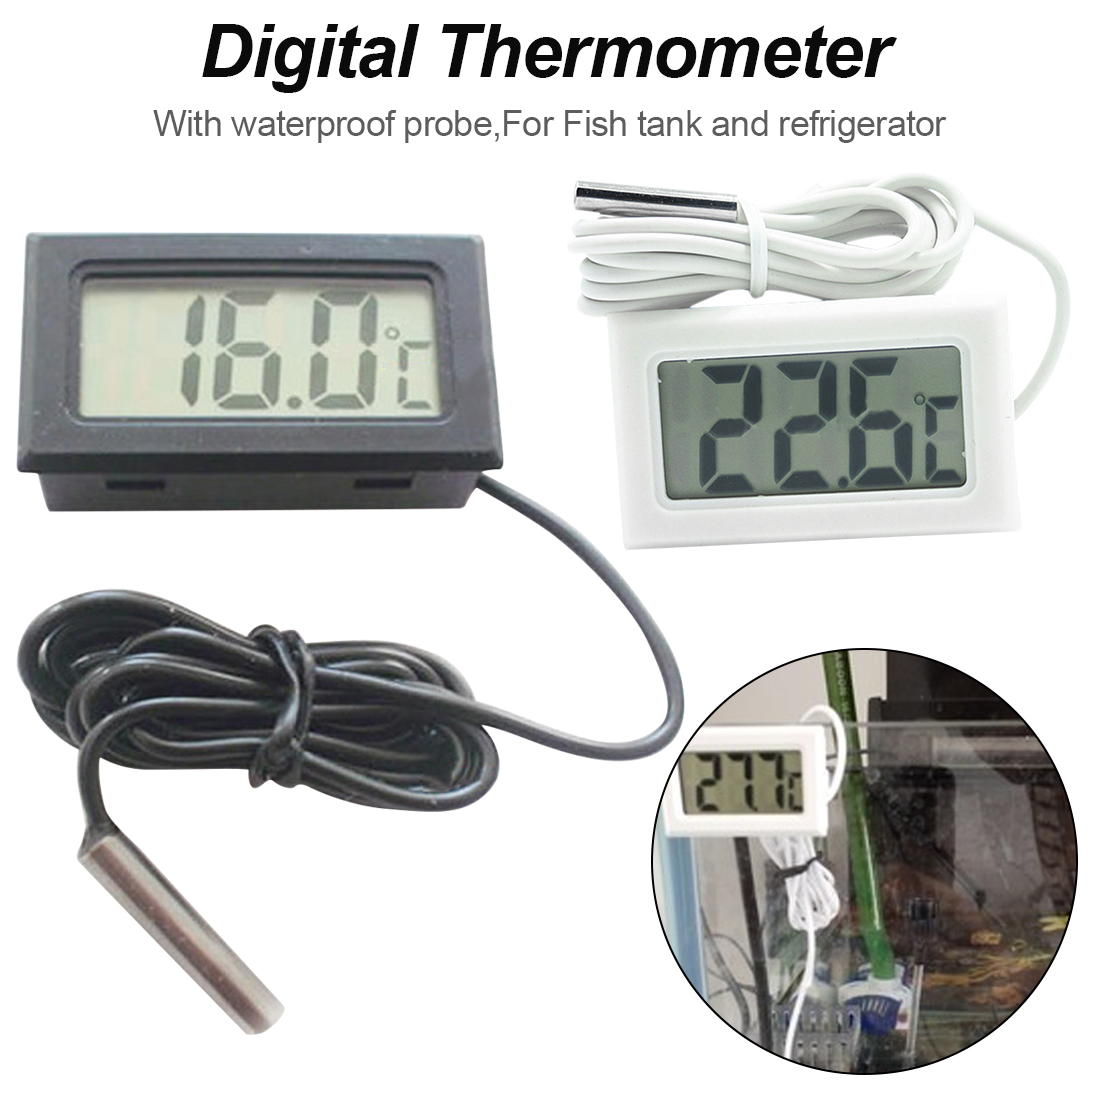 Aquarium 1M 2M Probe Digital Thermometer Electronic thermometer -<font><b>50</b></font>~<font><b>110C</b></font> Temperature Meter LCD Display image